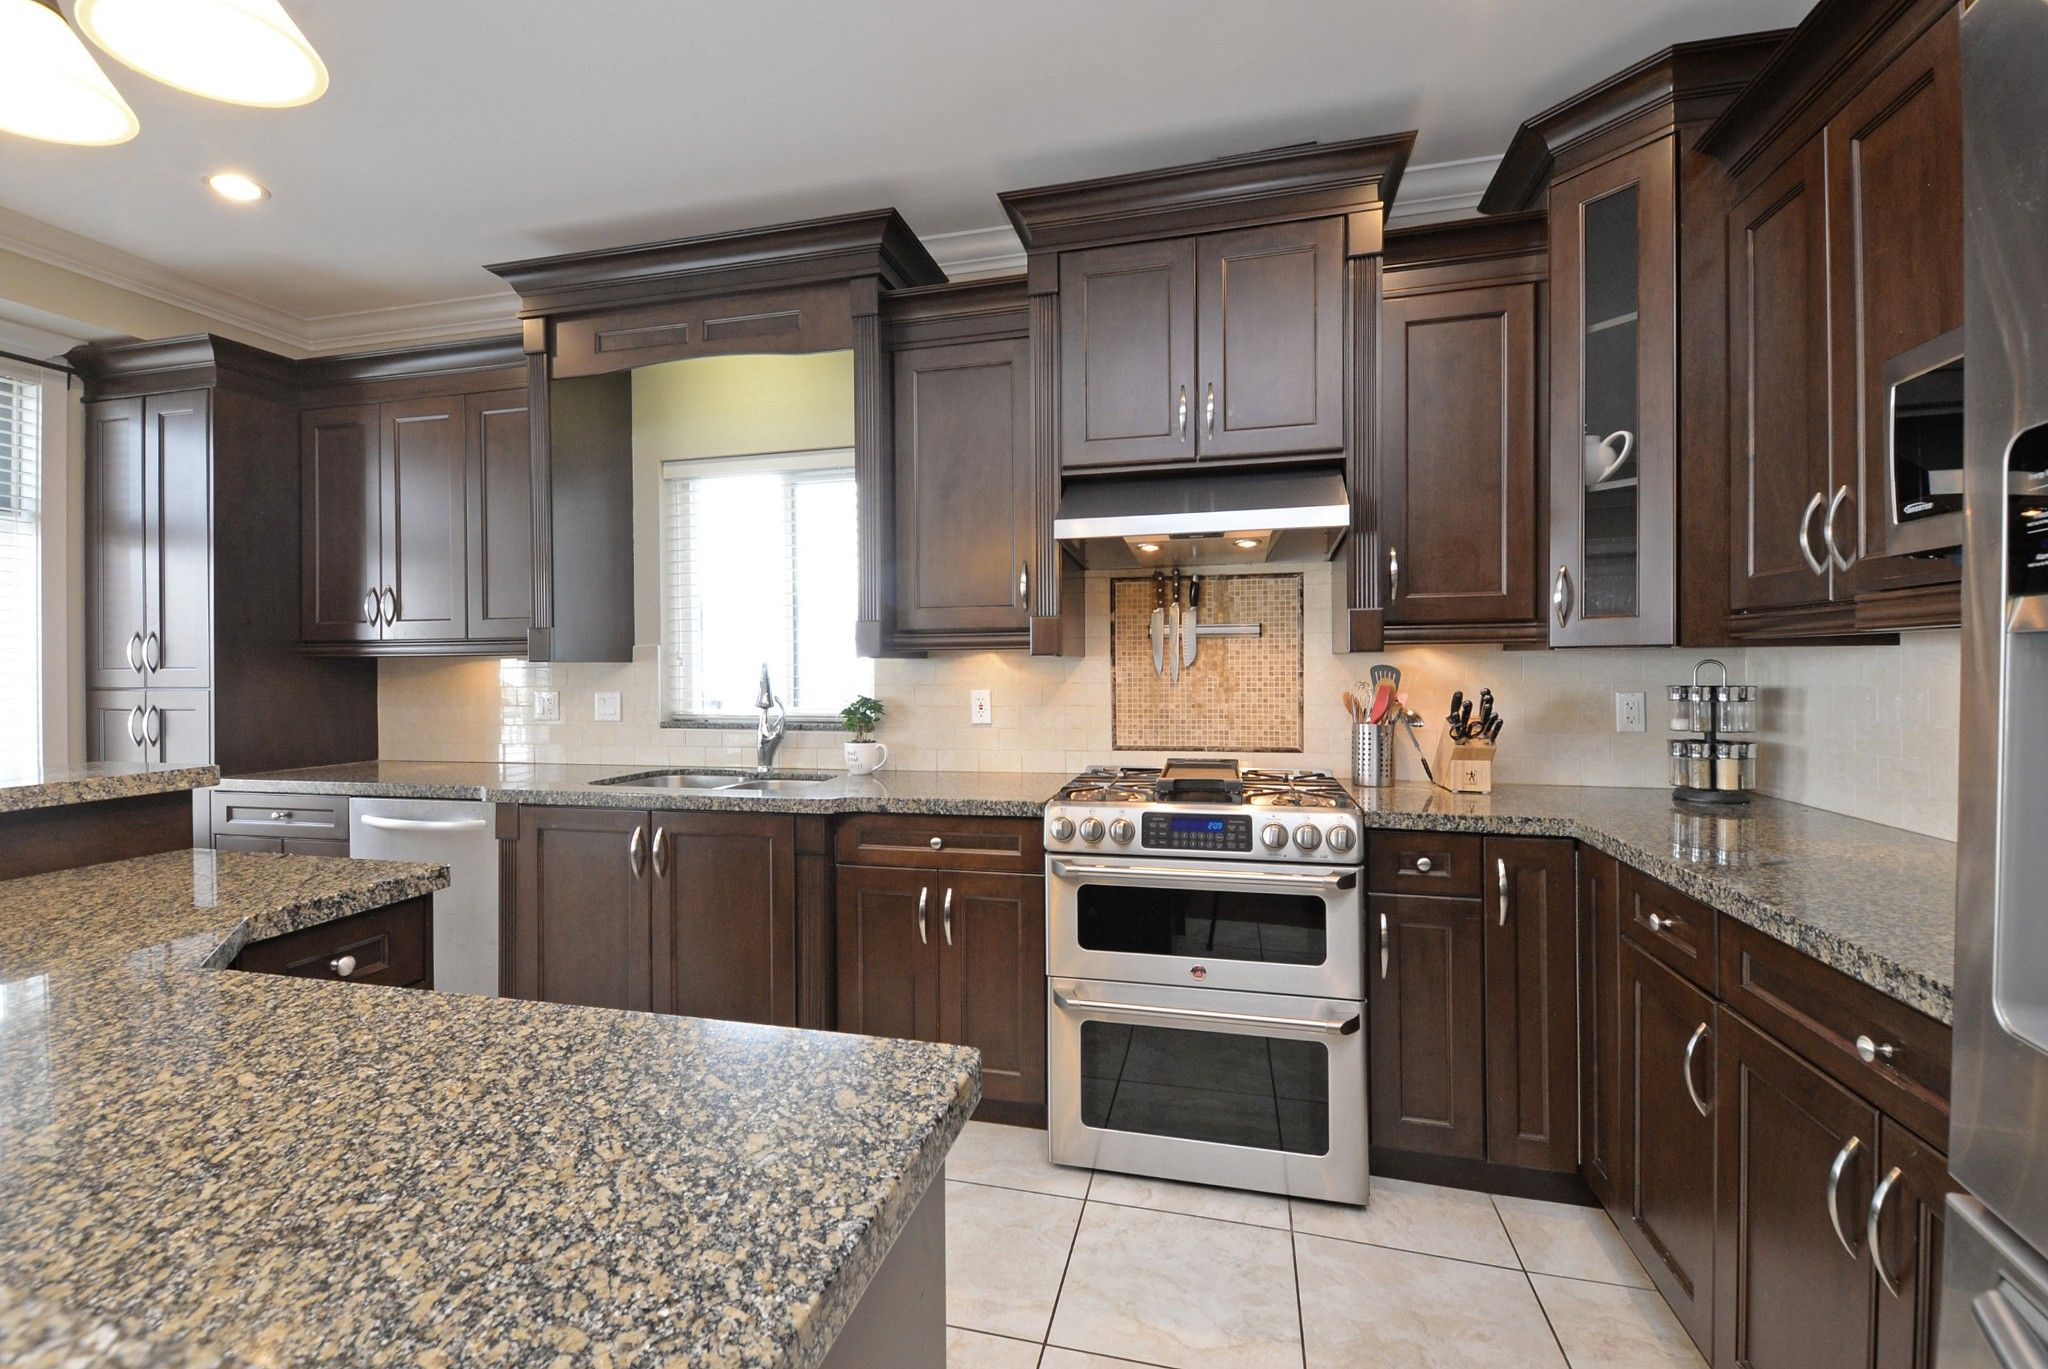 """Main Photo: 7830 211A Street in Langley: Willoughby Heights House for sale in """"YORKSON"""" : MLS®# R2239679"""